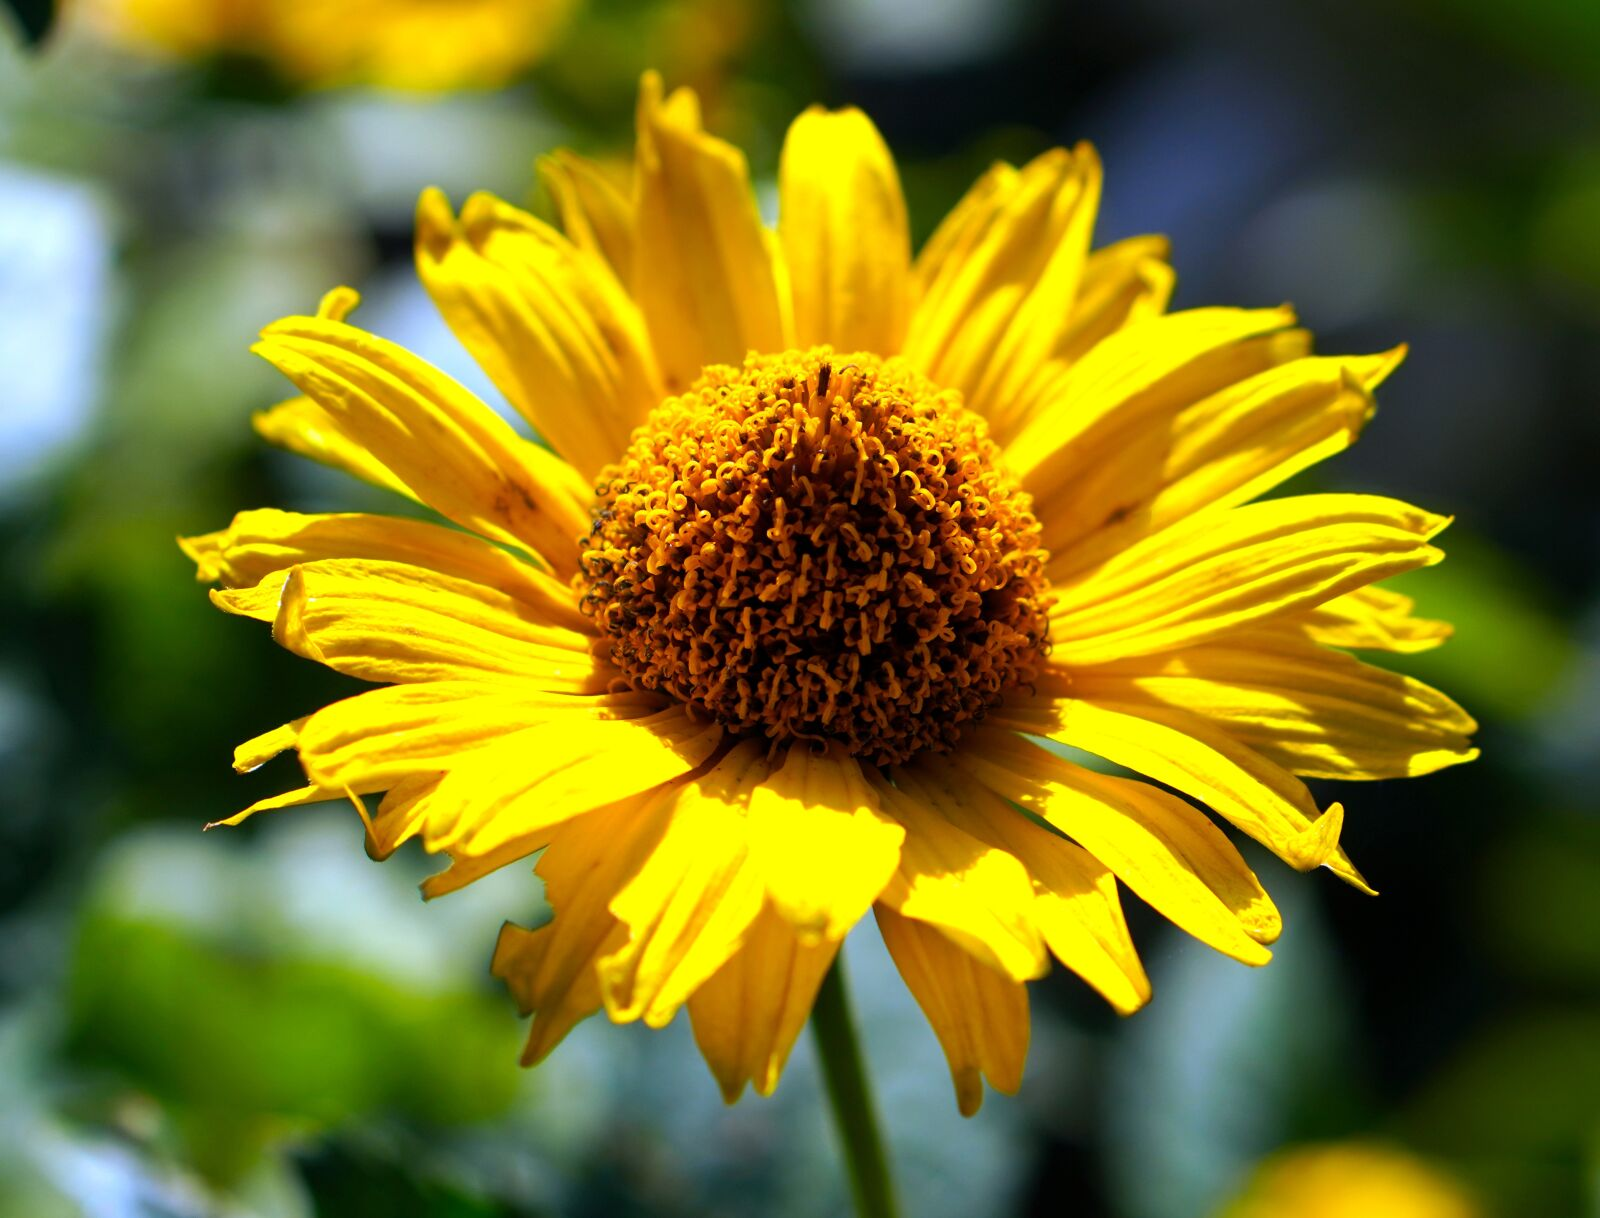 """Sony a6400 sample photo. """"Flower, yellow flower, blossom"""" photography"""